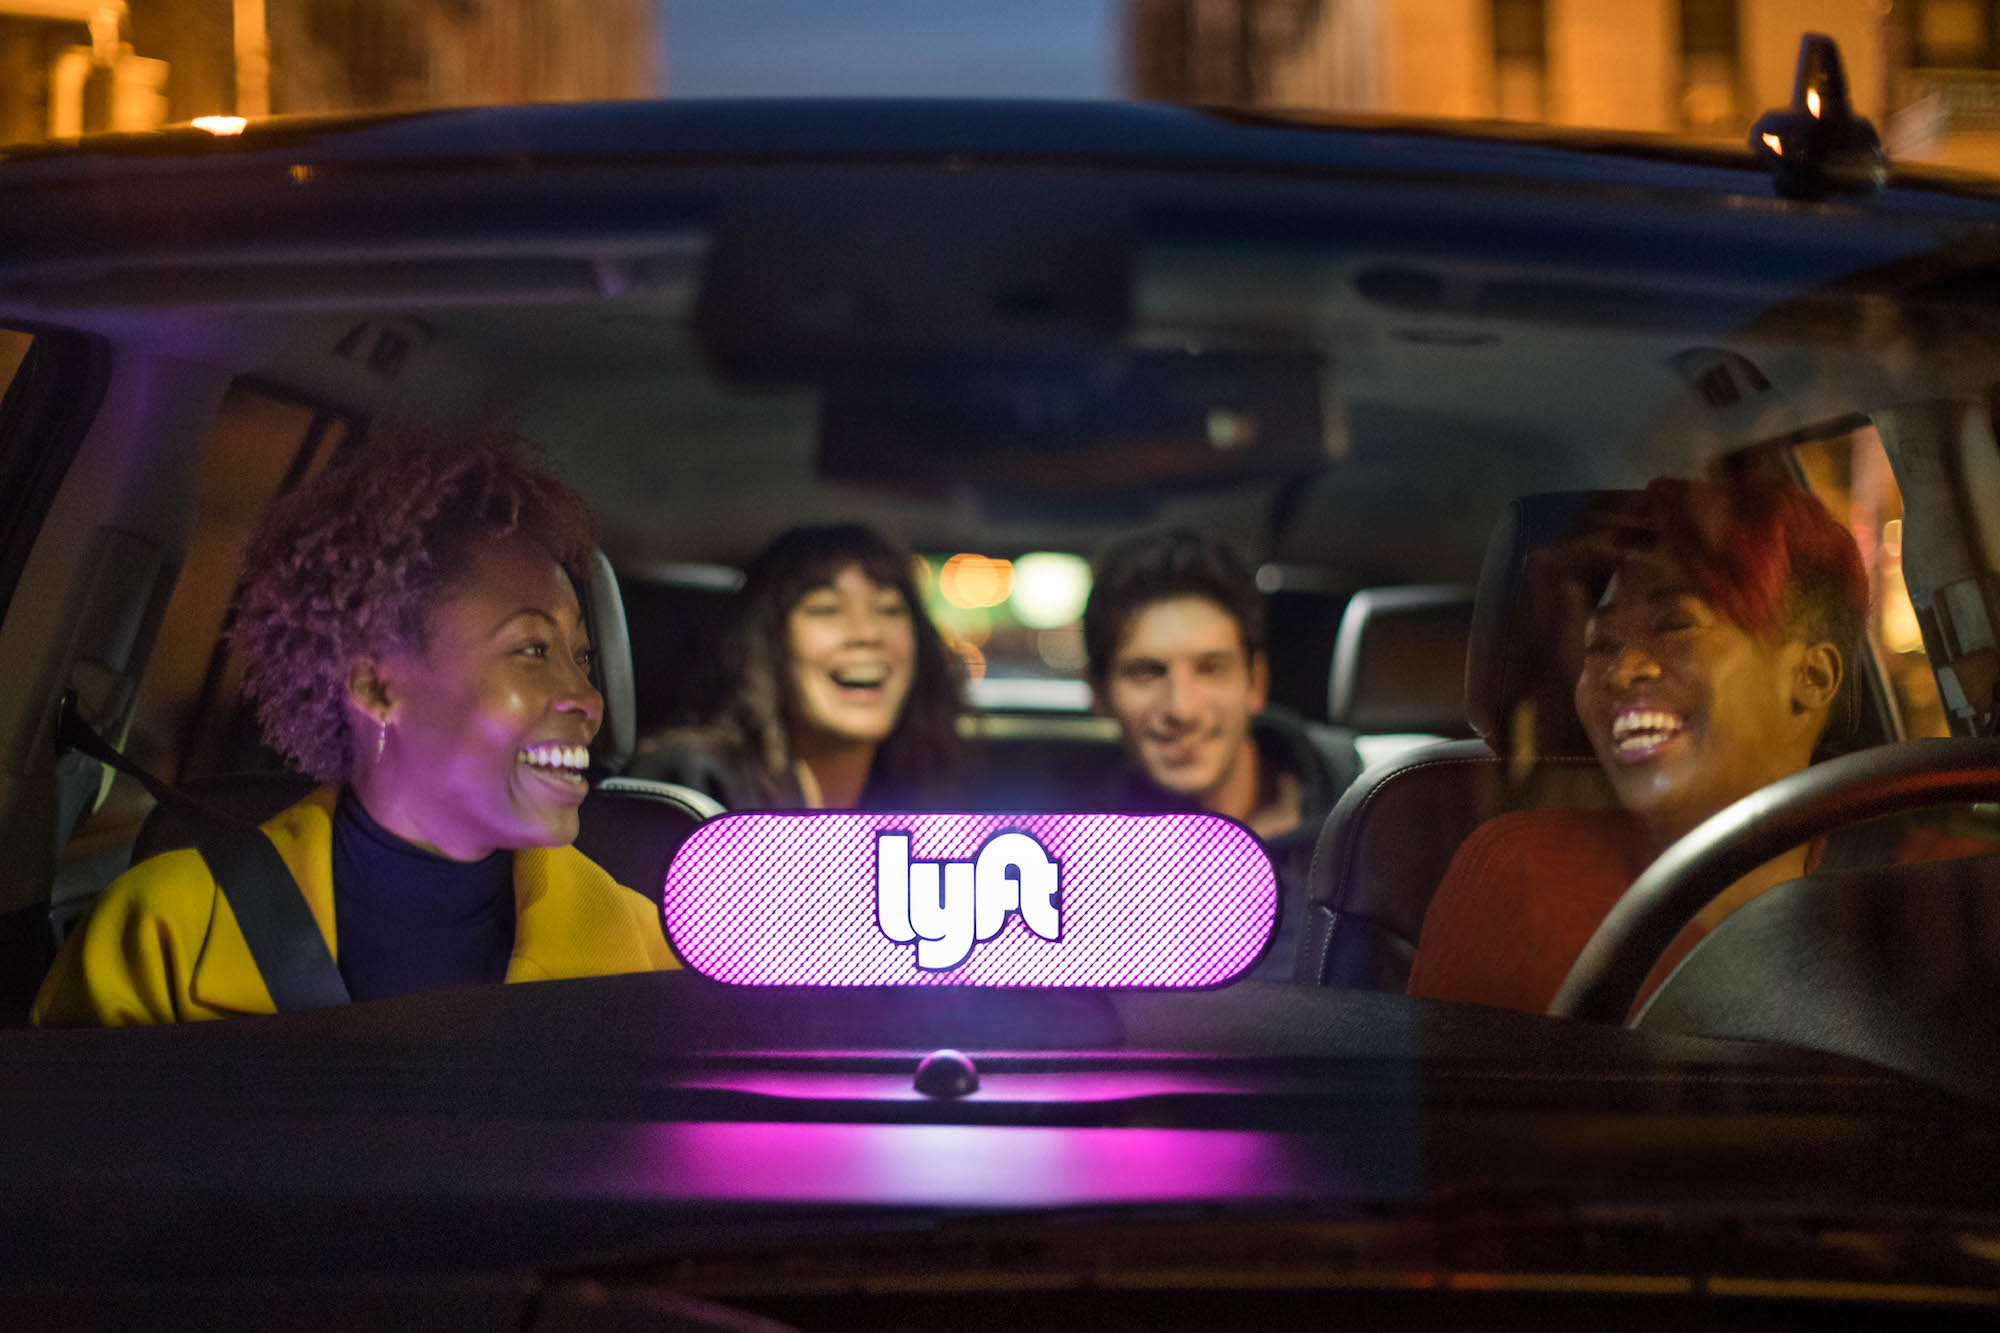 People in a Lyft ride.